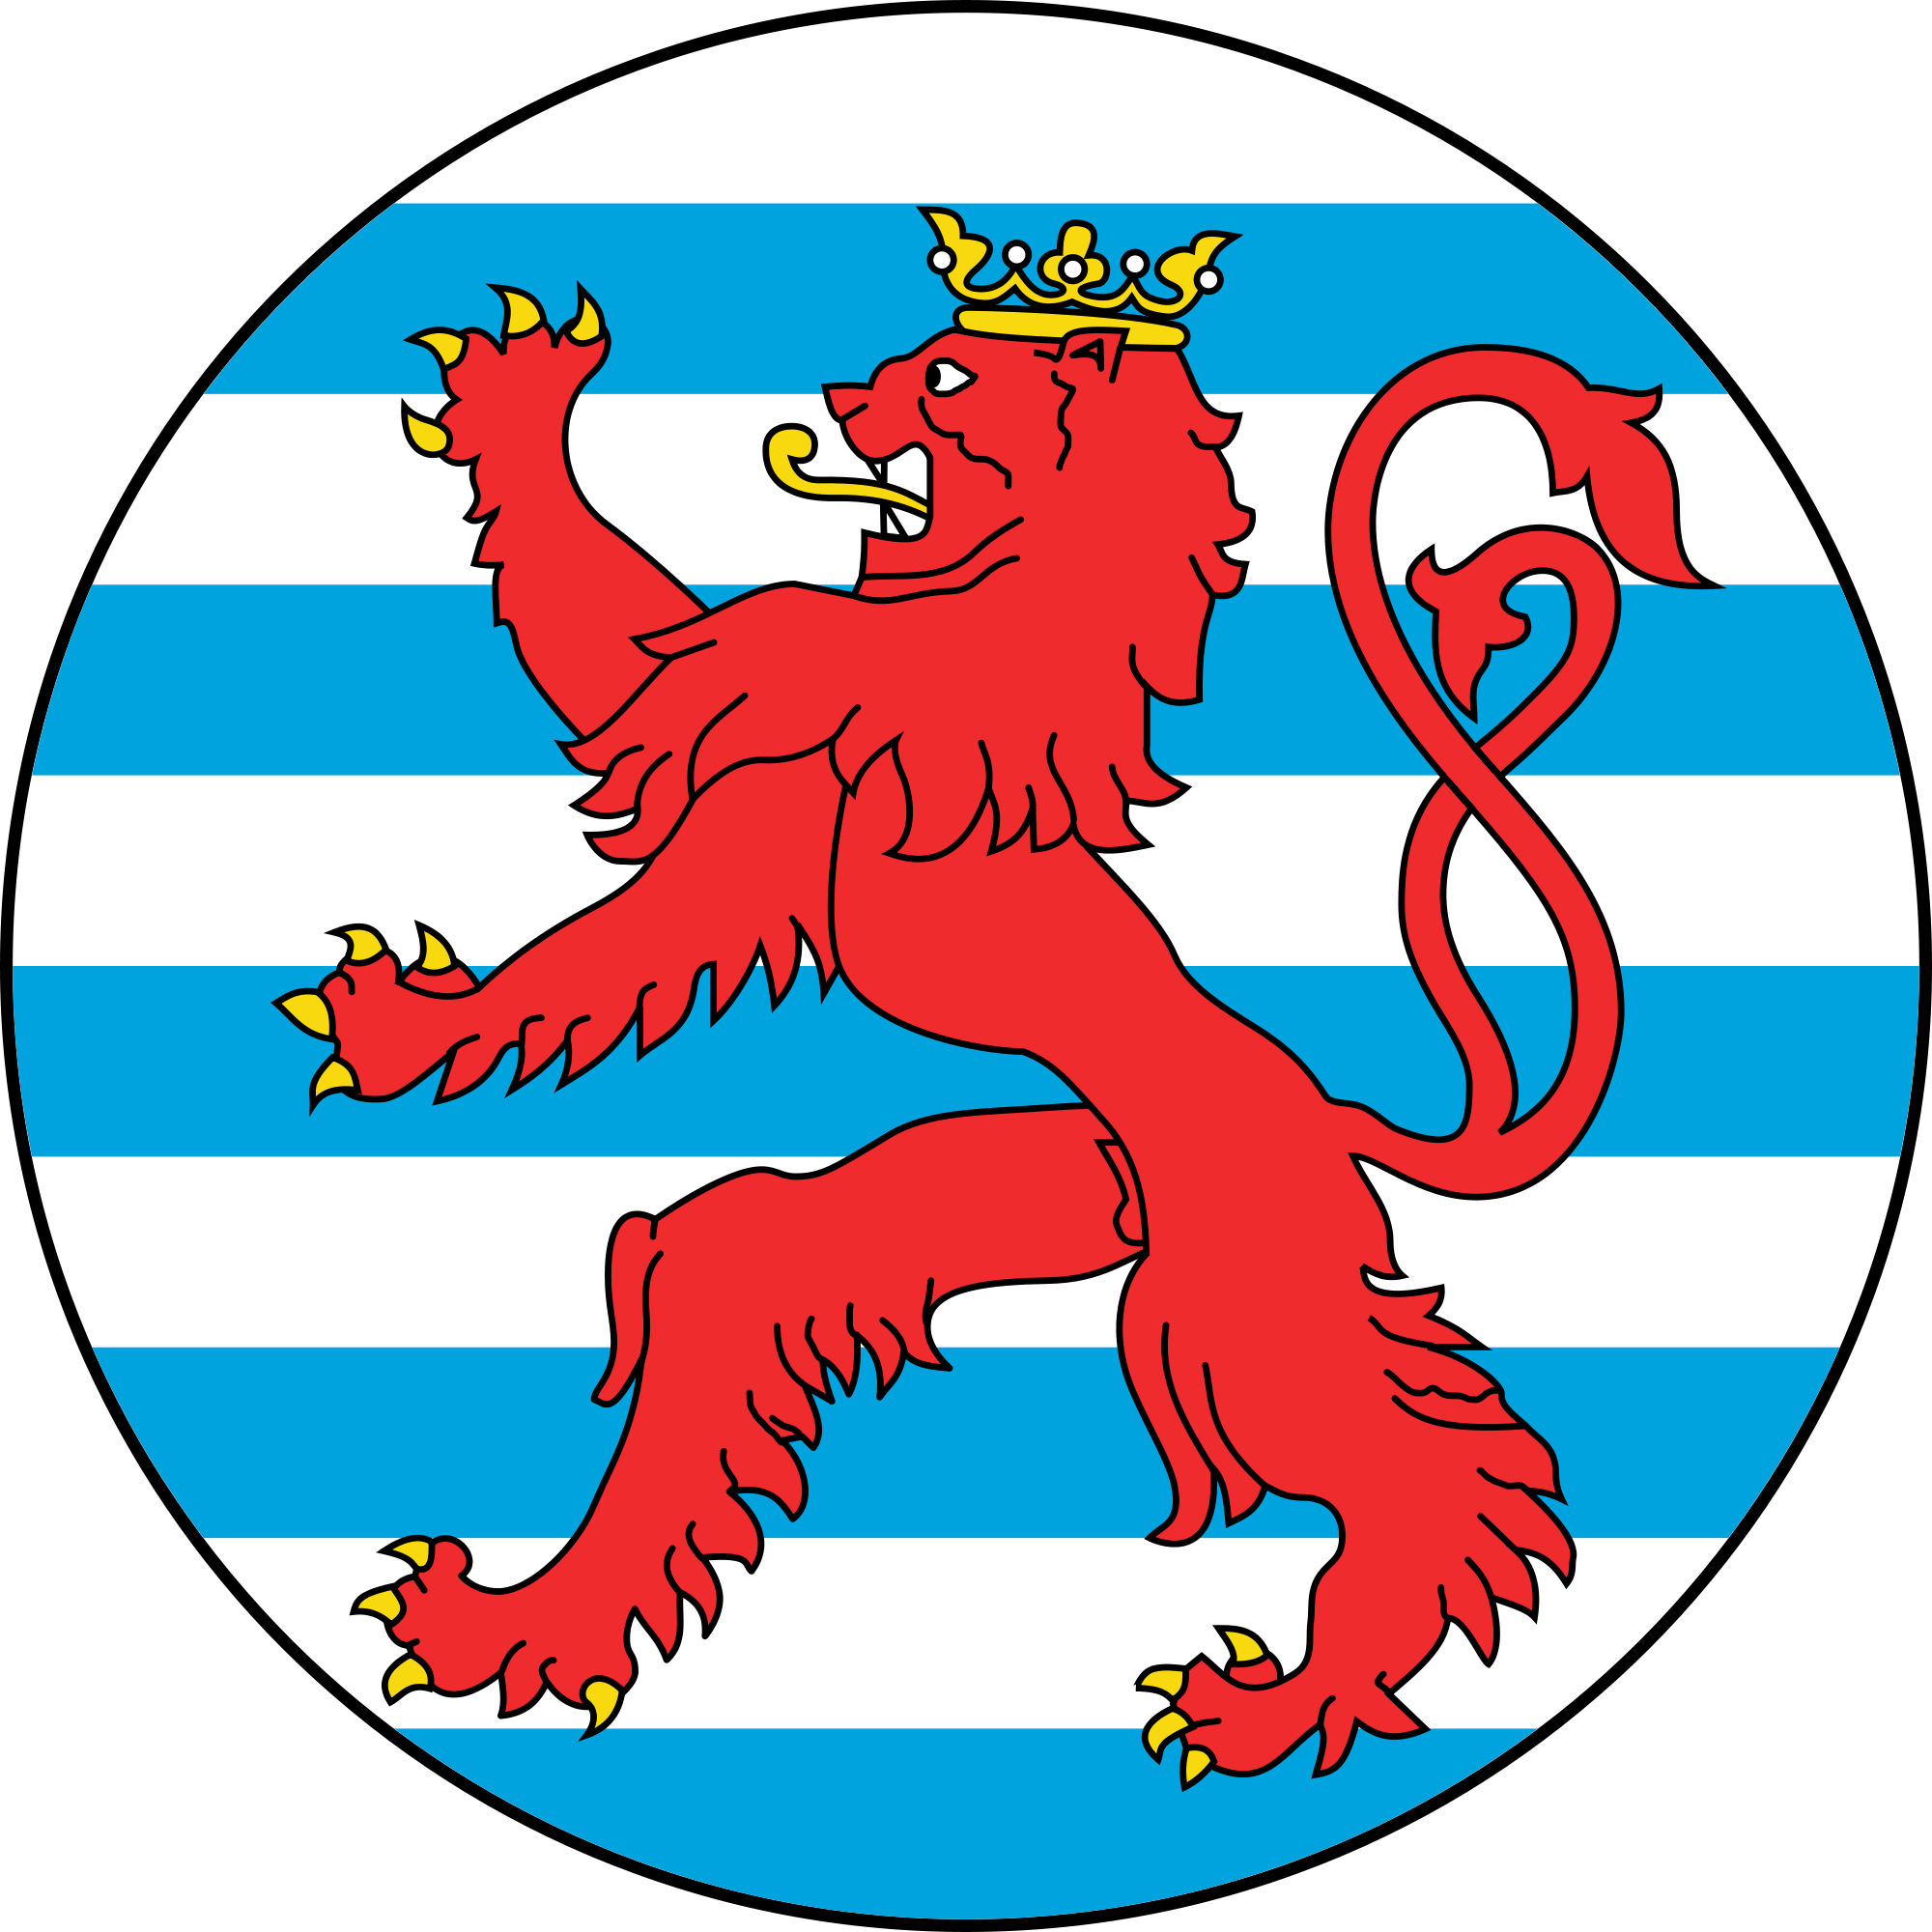 Luxembourg aviation rondel medieval life and leisure pinterest roundel of luxembourg biocorpaavc Choice Image